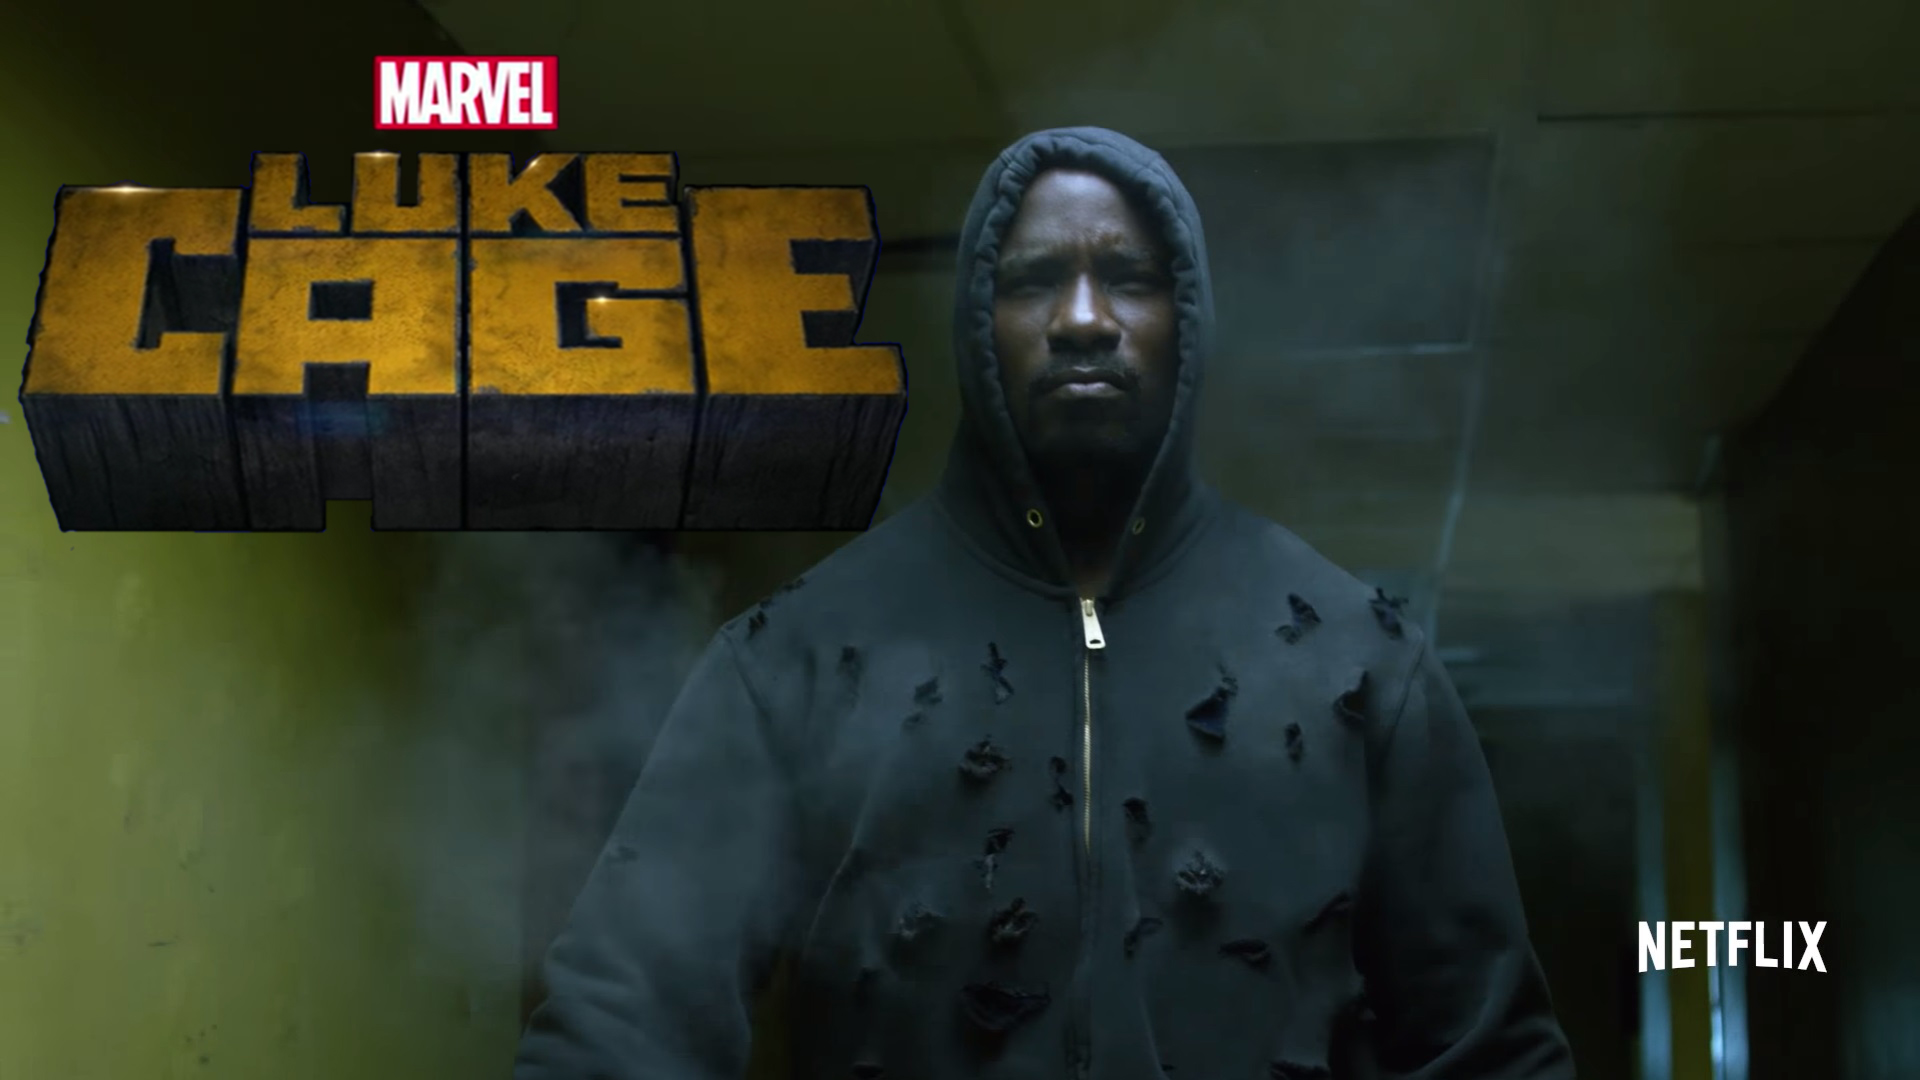 Marvel Series Luke Cage Releases Streets Trailer In Time For Sept 30 Netflix Premiere